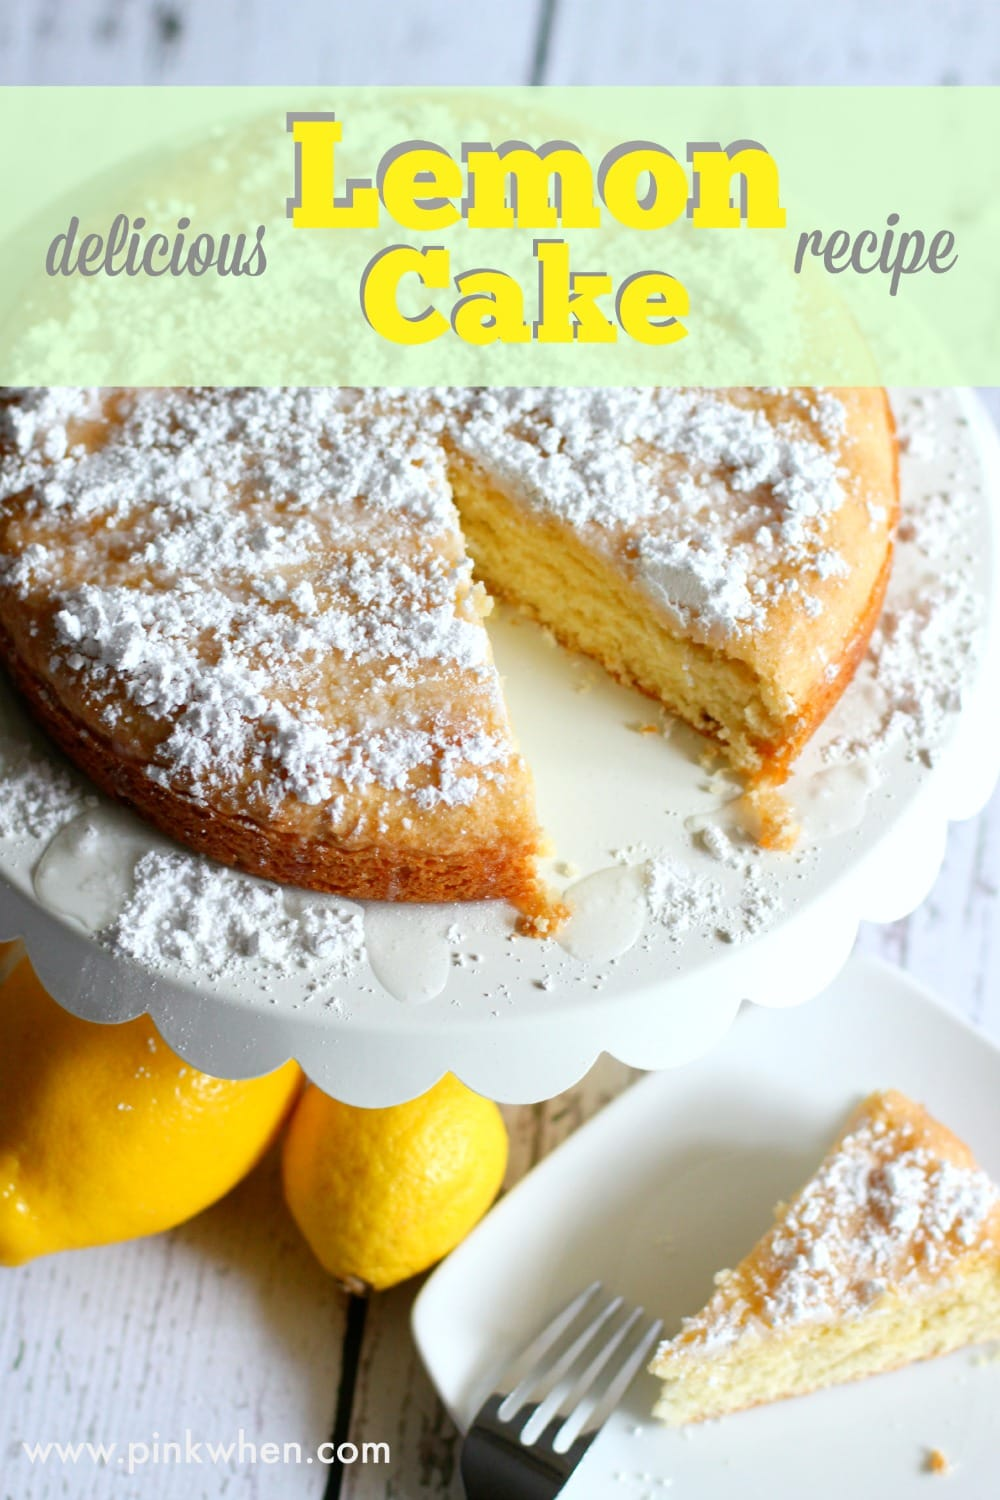 Edible Lemon Cake Decorations